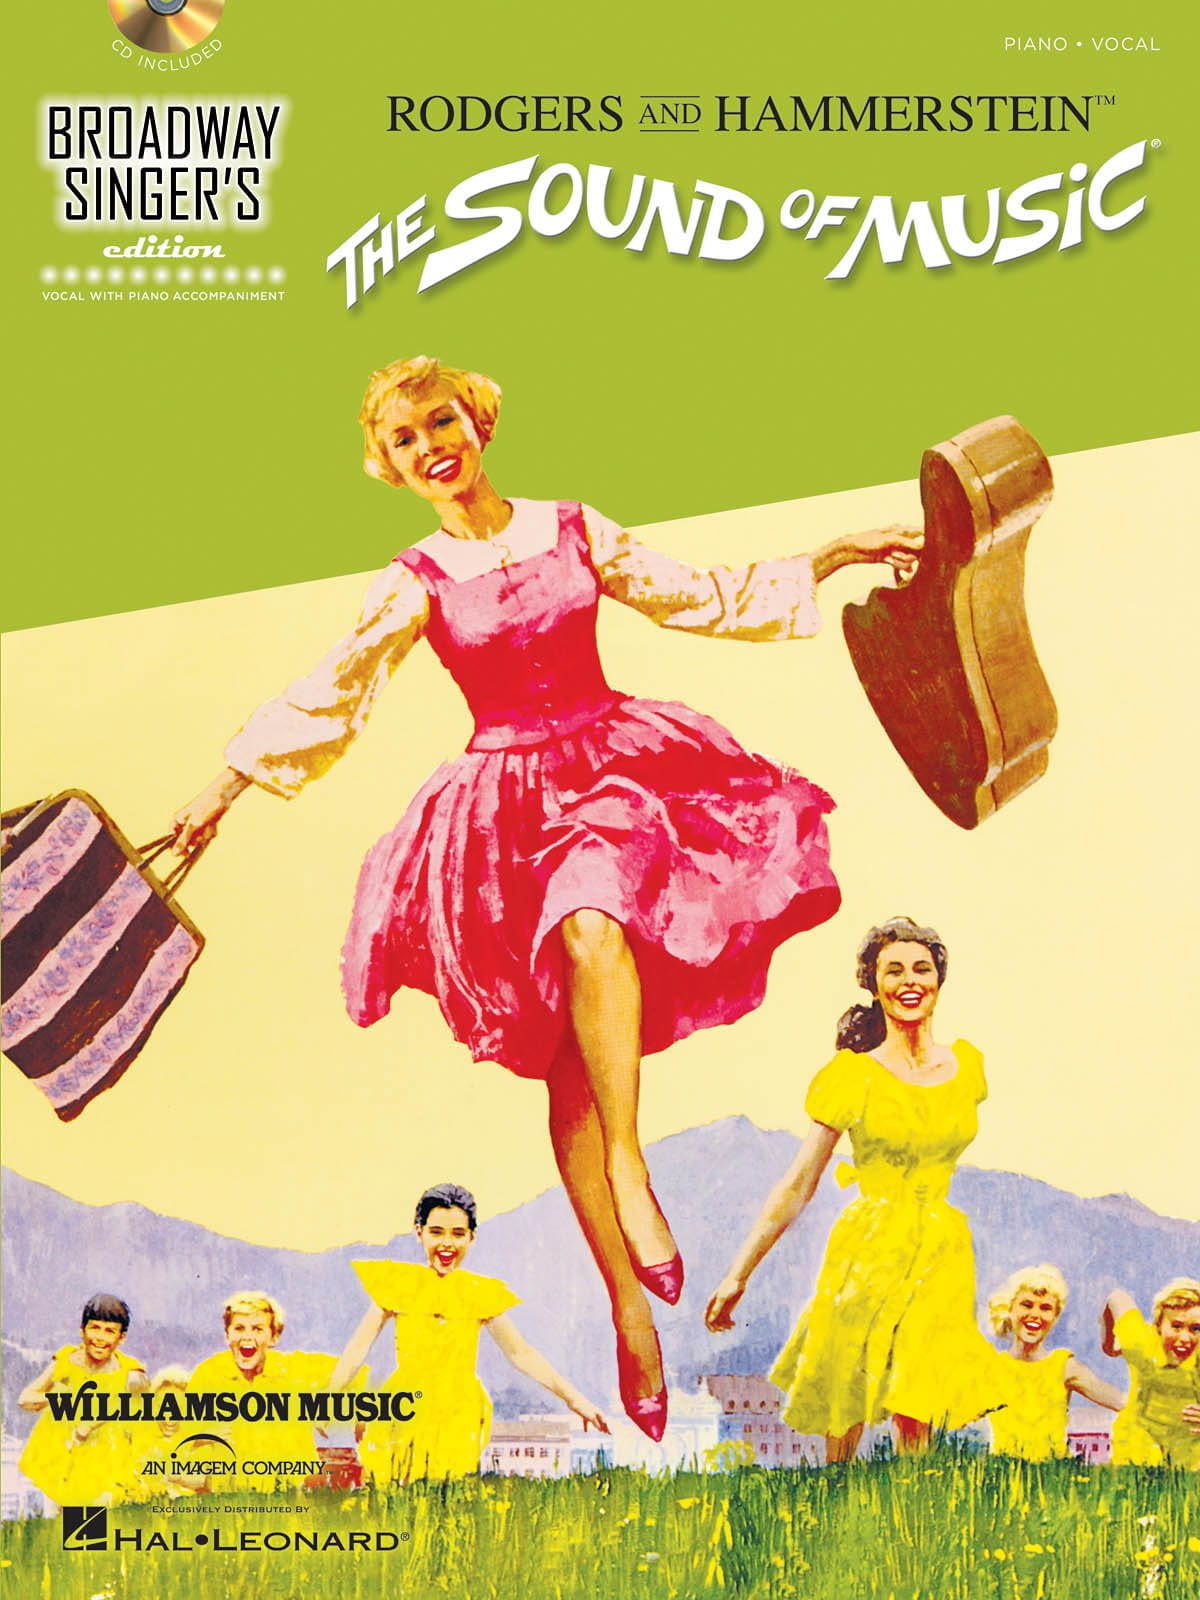 The sound of music - Broadway singer's edition - laflutedepan.com